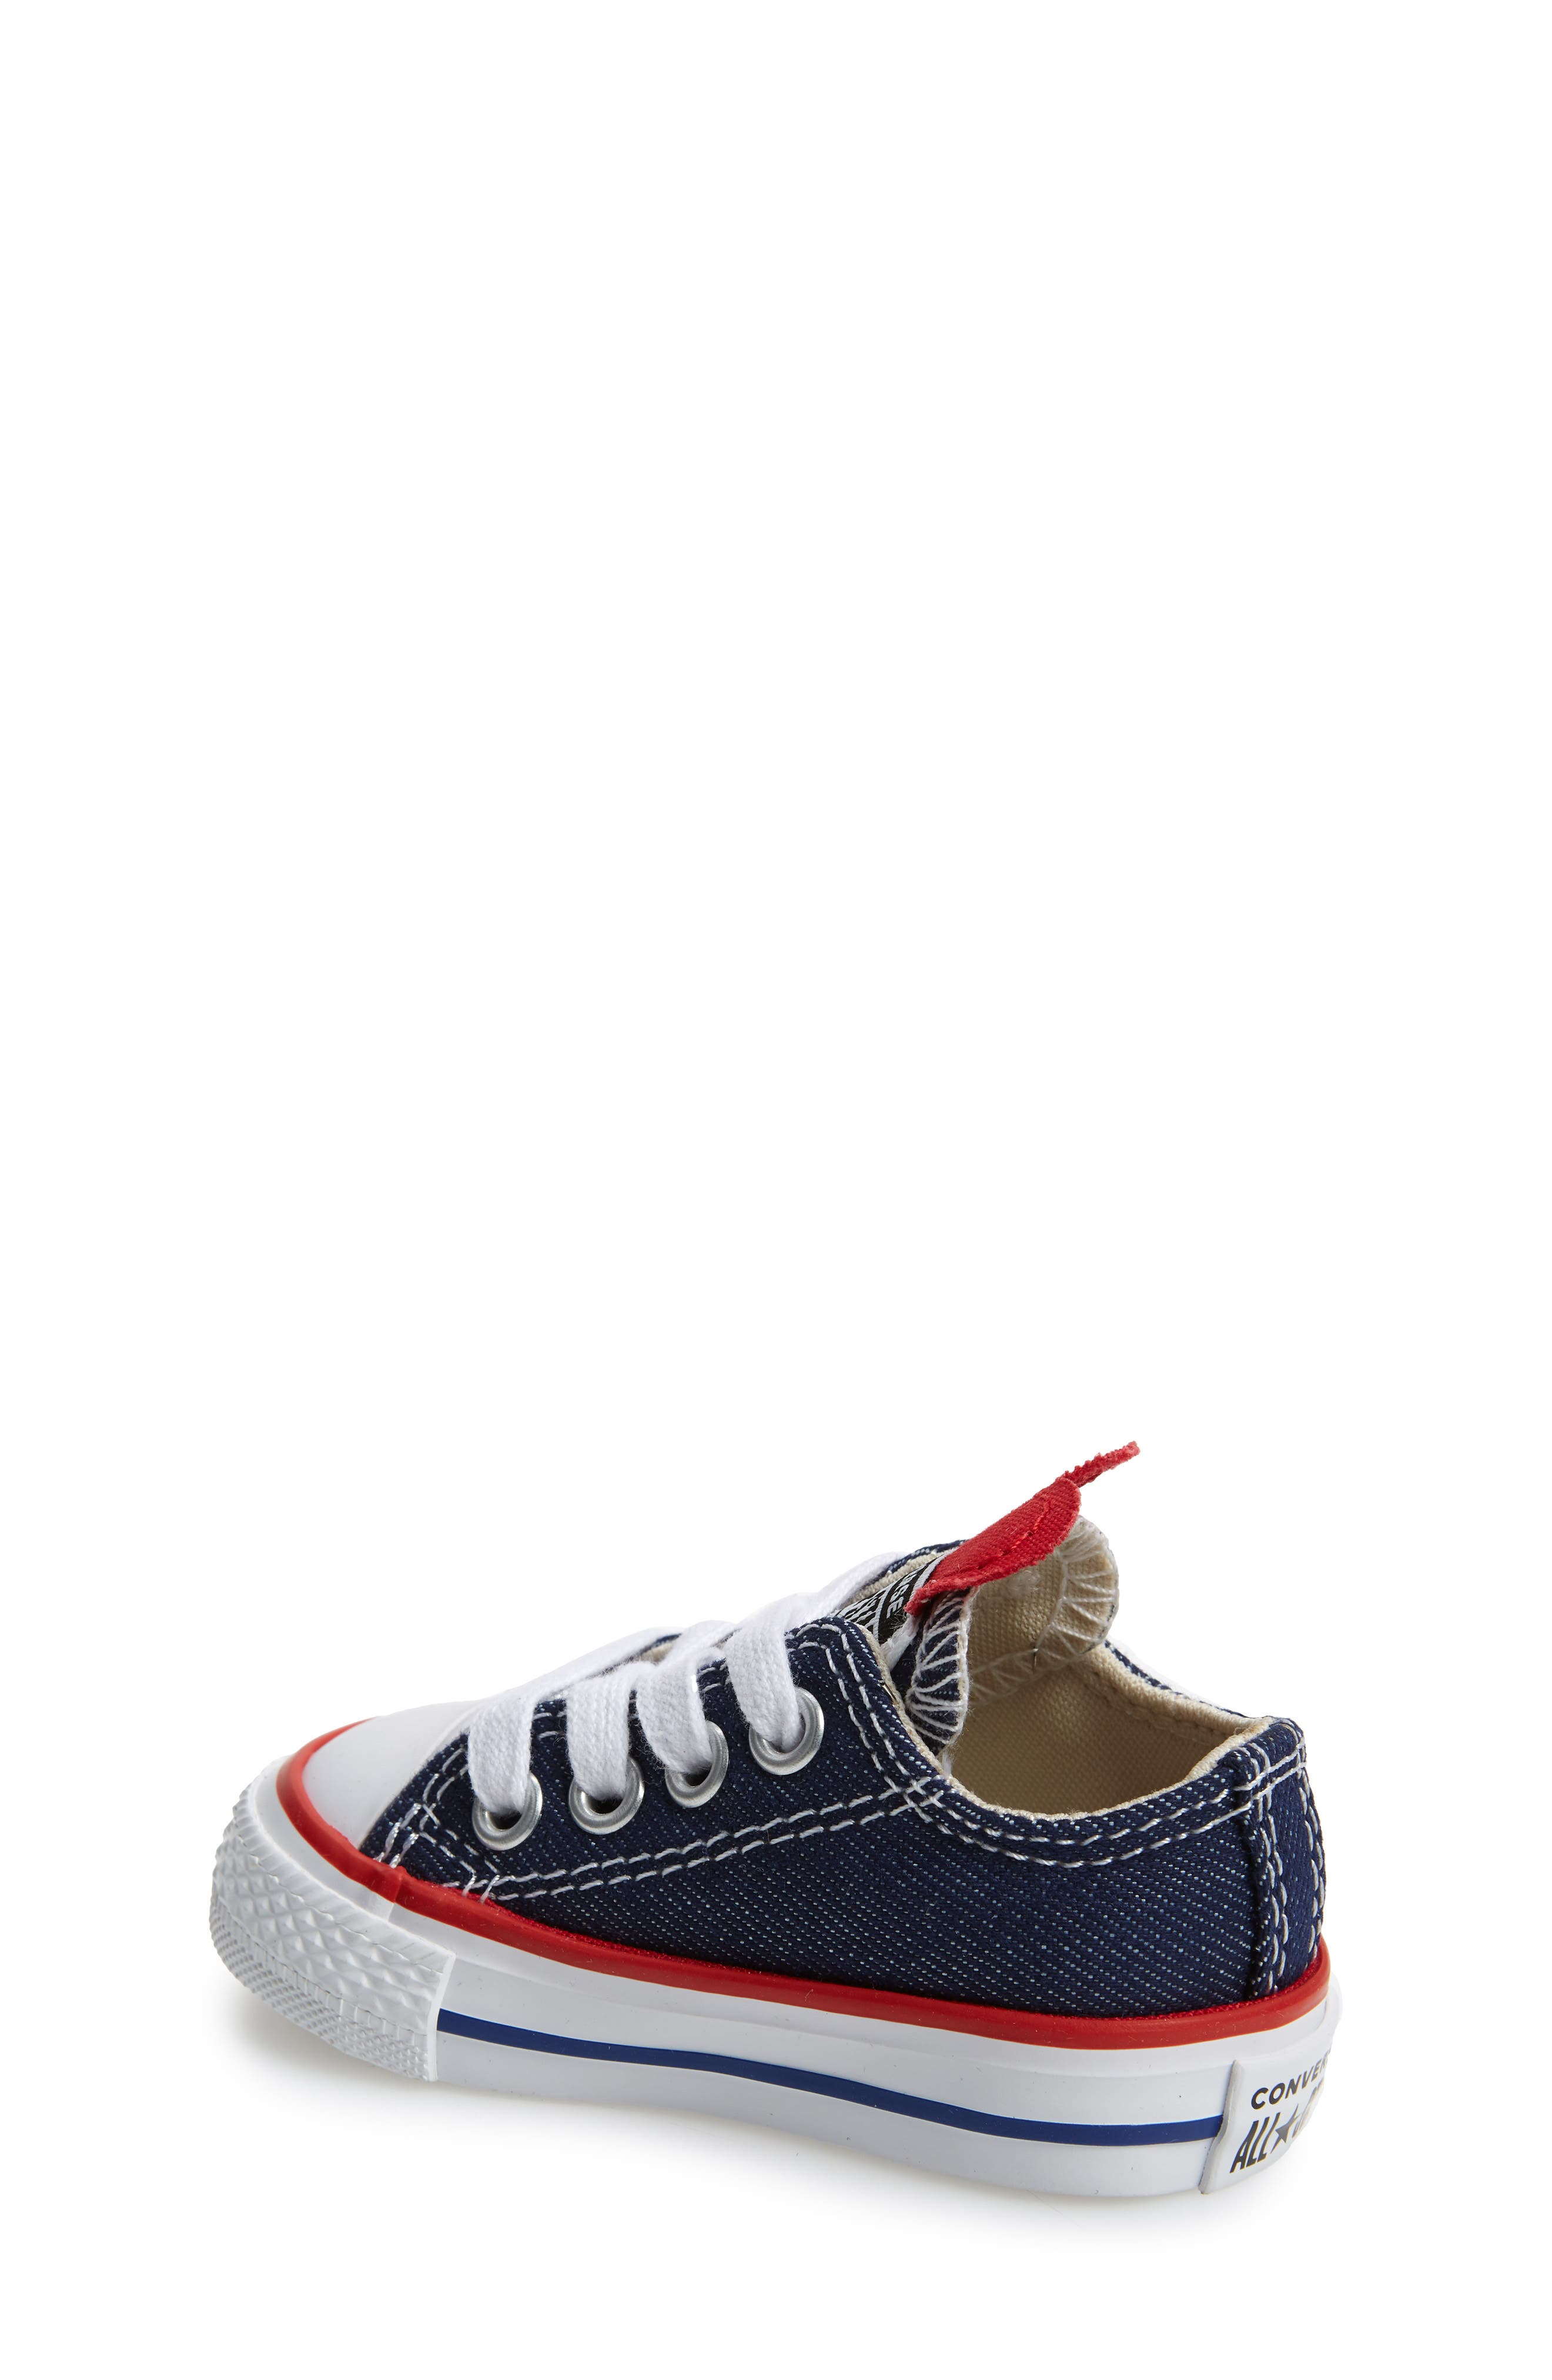 CONVERSE, Chuck Taylor<sup>®</sup> All Star<sup>®</sup> Ox Low Top Sneaker, Alternate thumbnail 2, color, 410